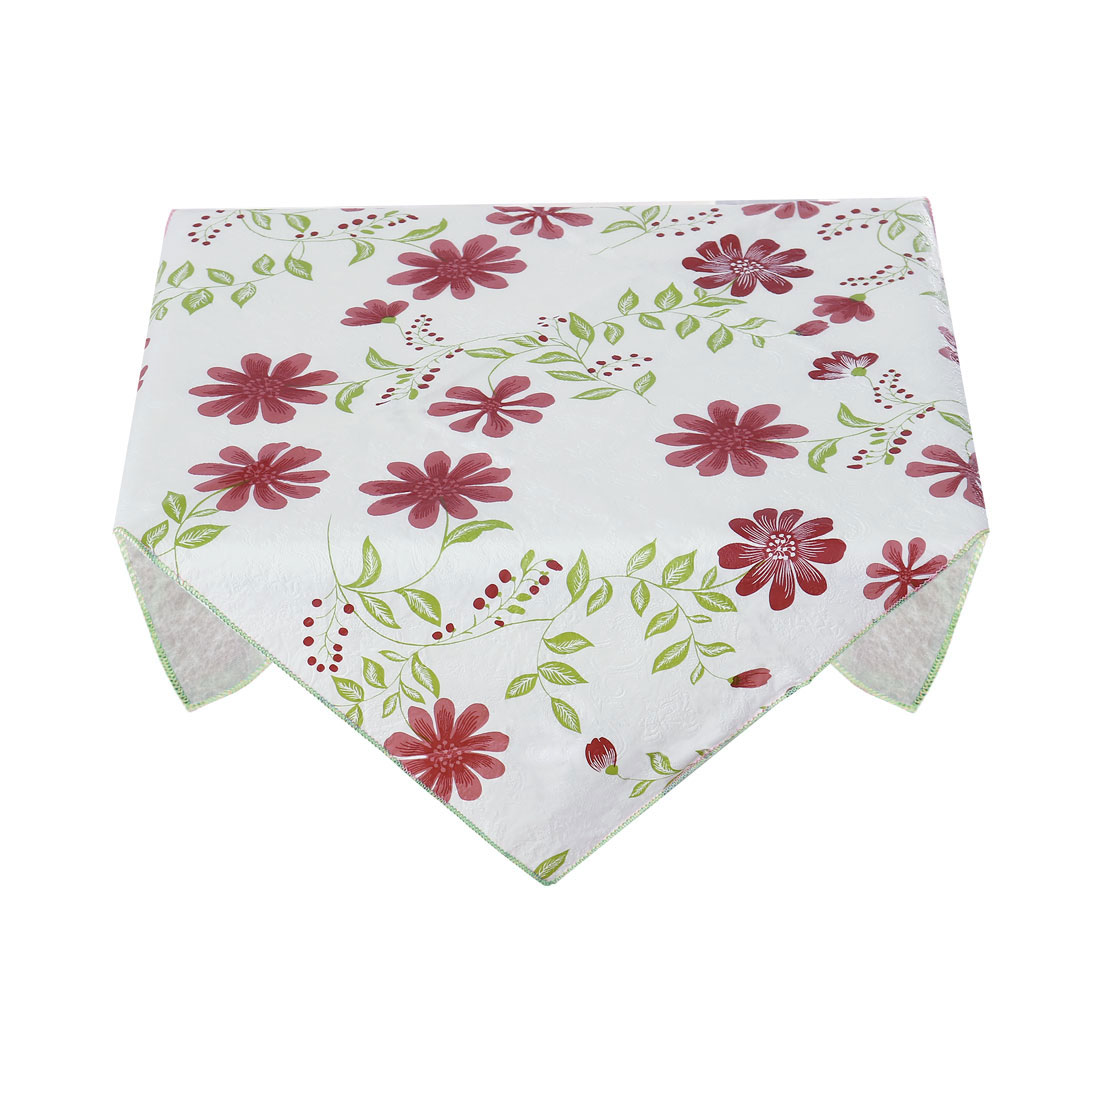 Home Picnic Square Nine-petals Flower Pattern Water Resistant Oil-proof Tablecloth Table Cloth Cover Red 35 x 35 Inch